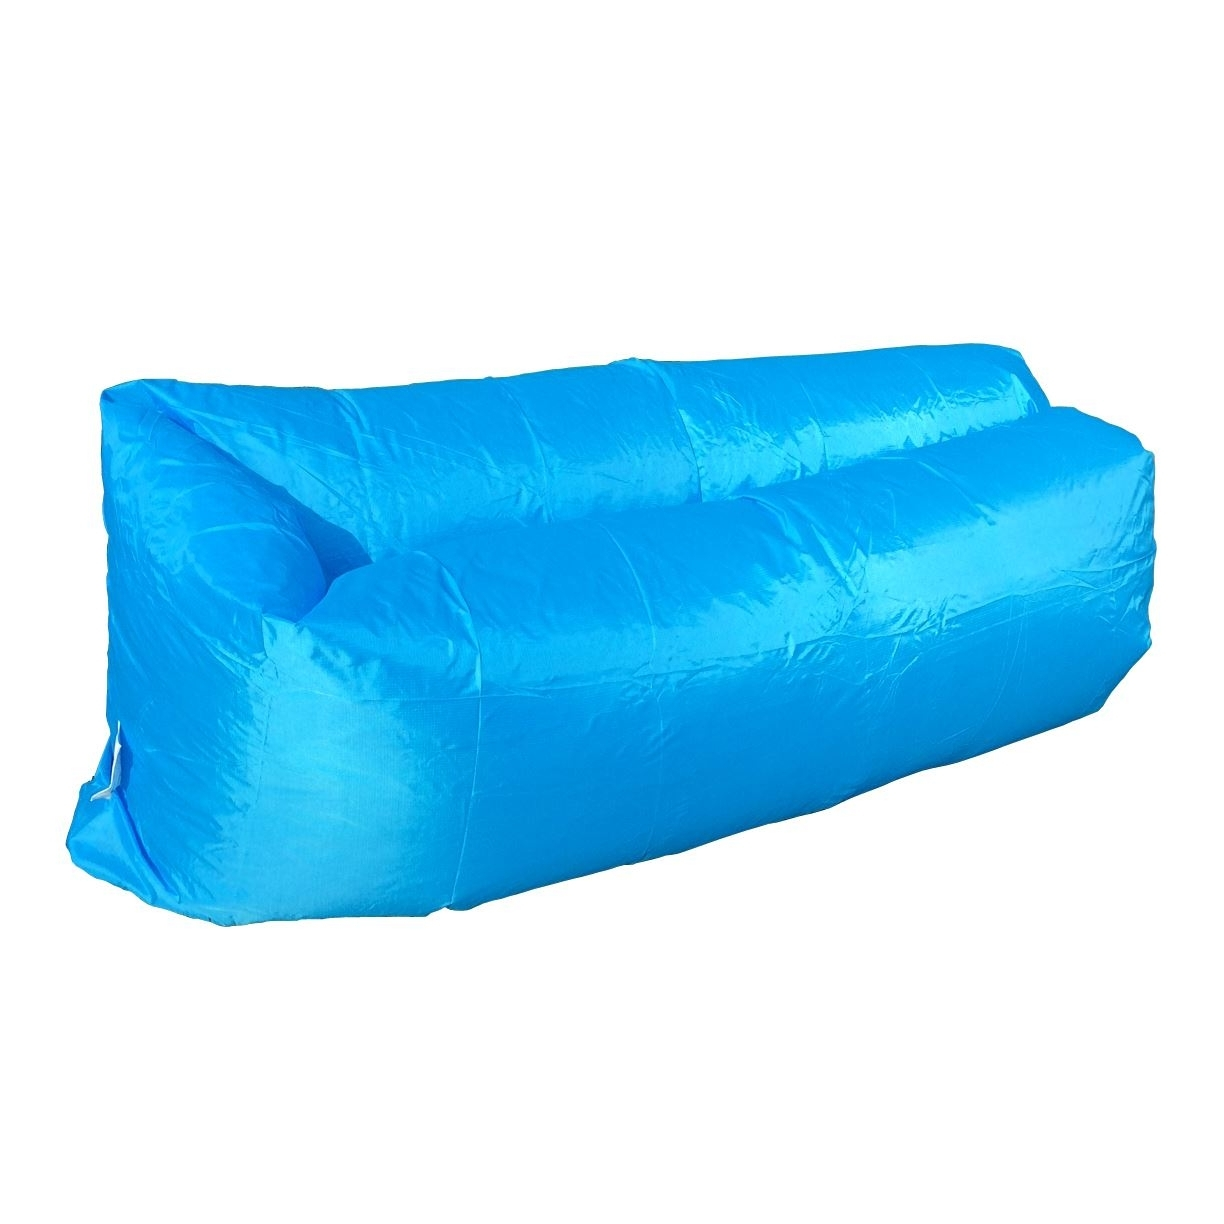 Favorite Inflatable Sofas And Chairs In Inflatable Sofa Chair Air Bed Luxury Seat Camping Festival Holiday (View 5 of 15)